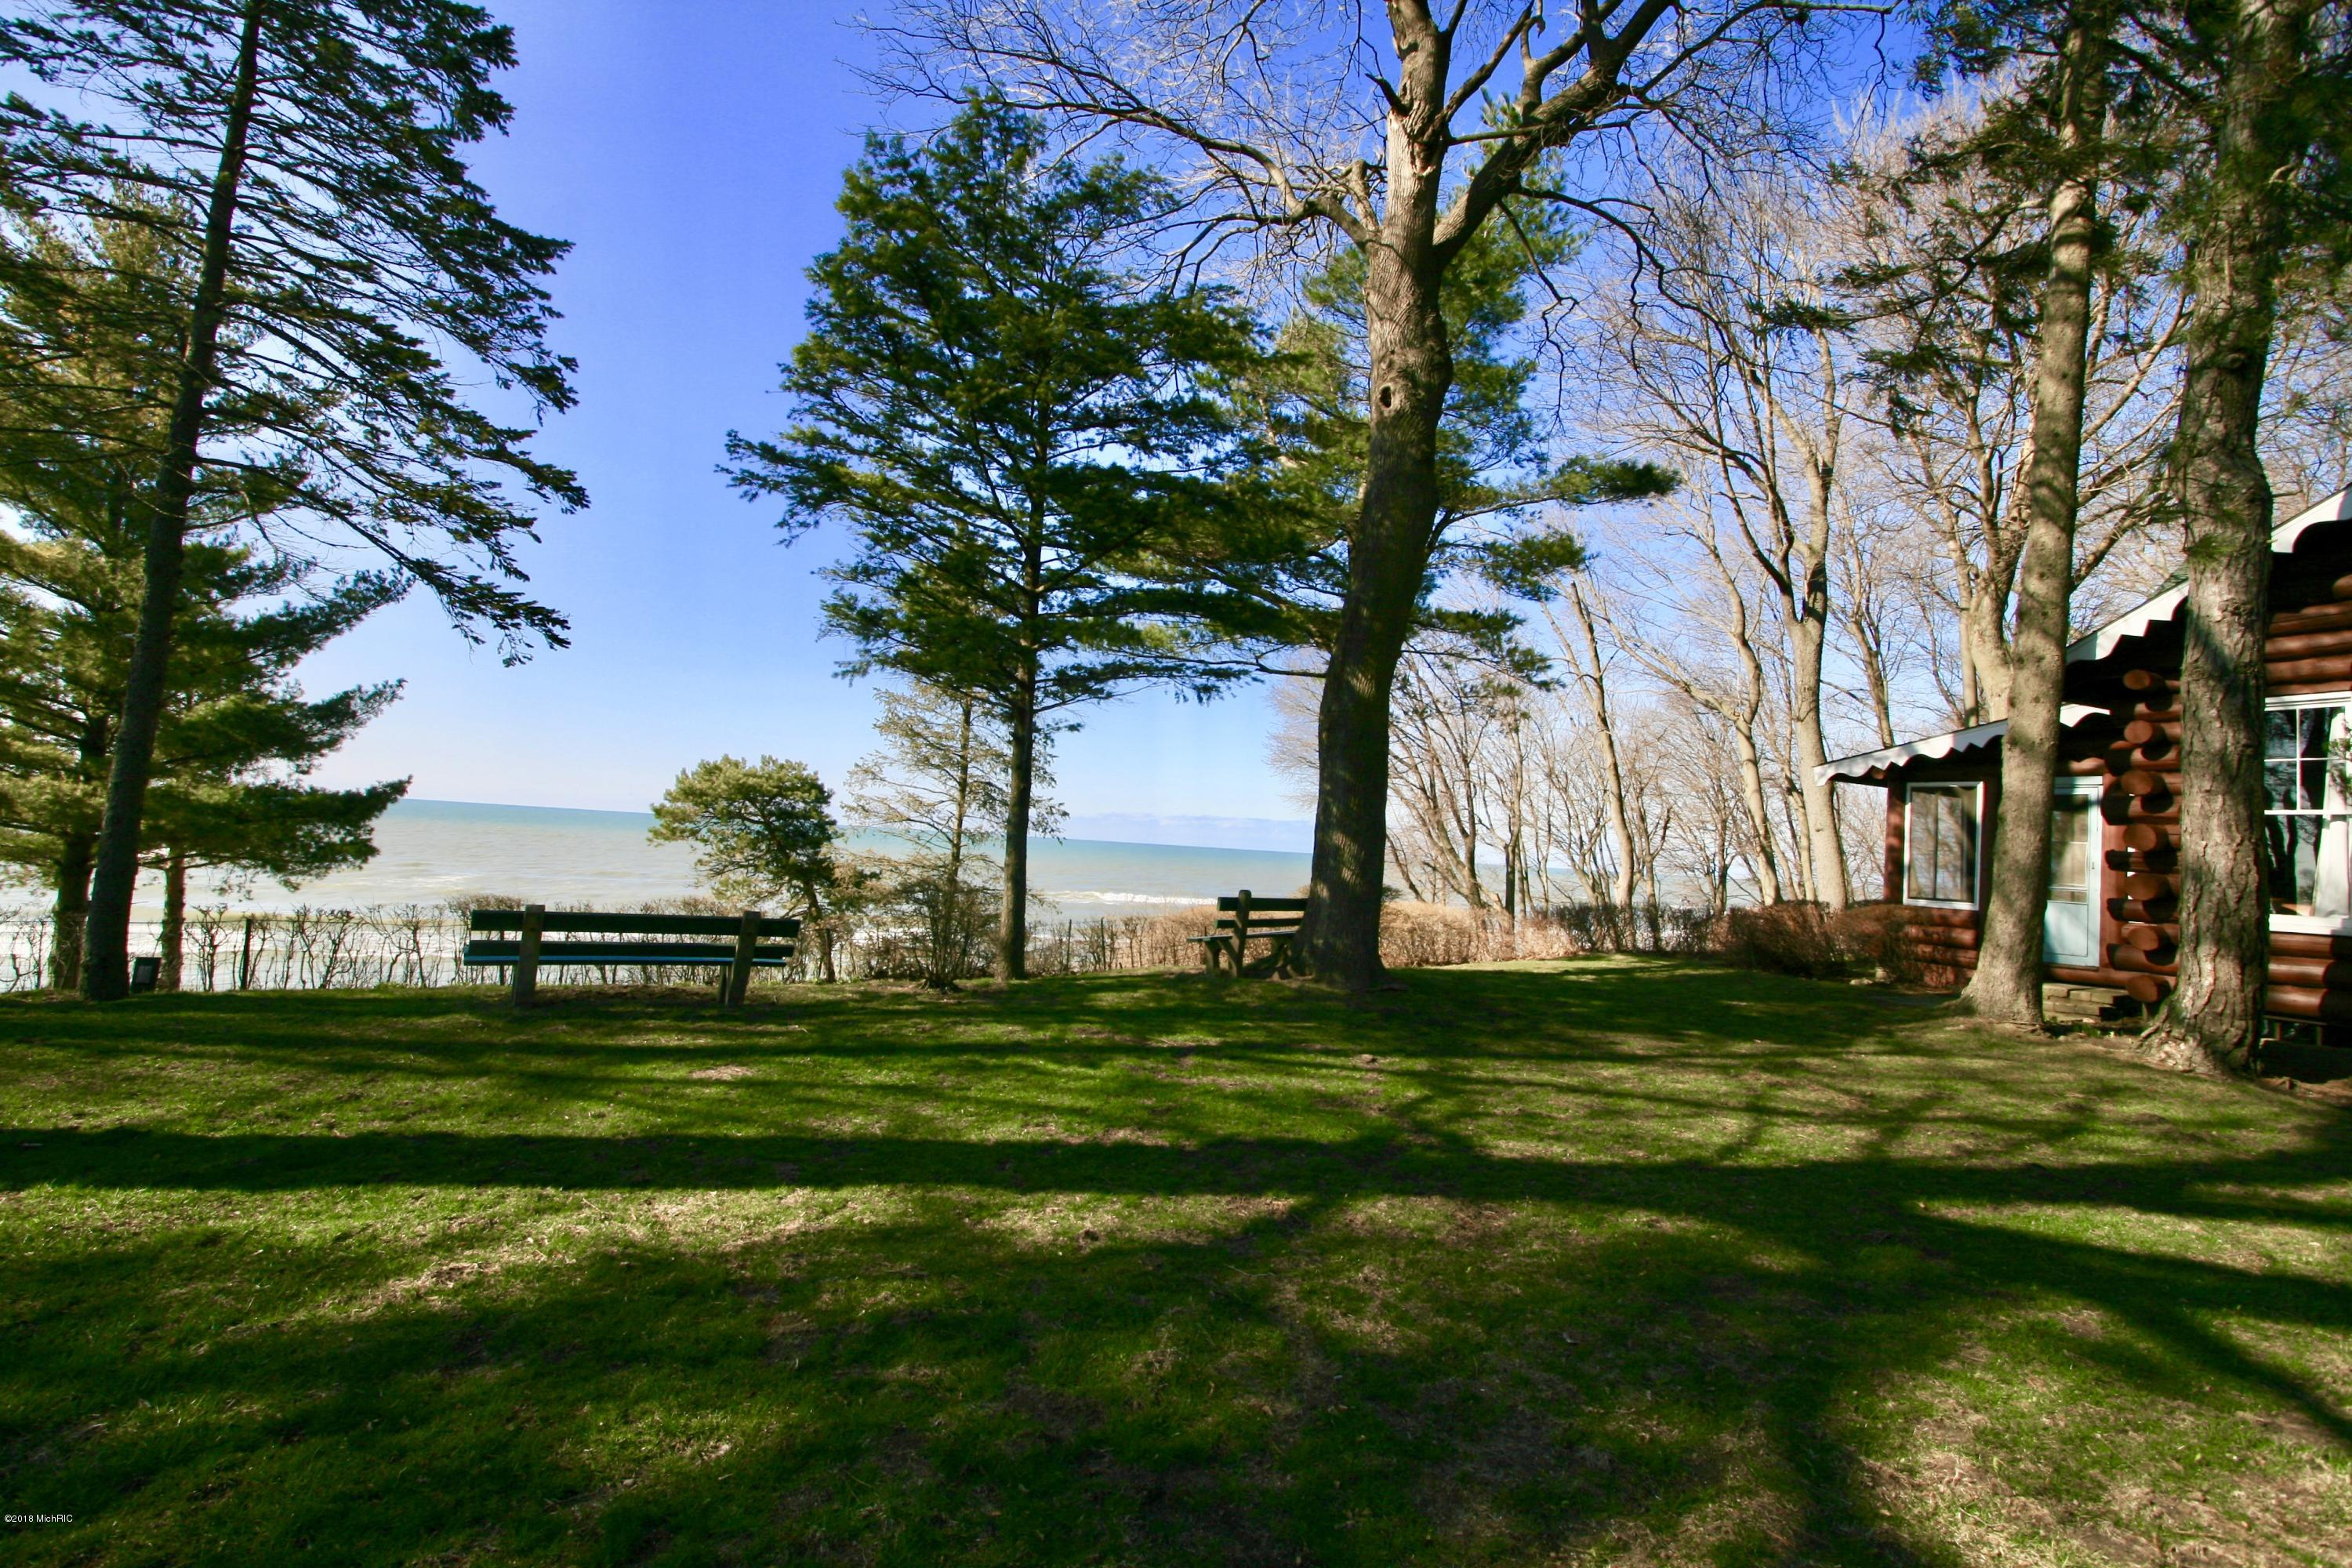 15860 Lakeshore , Union Pier, MI 49129 Photo 8